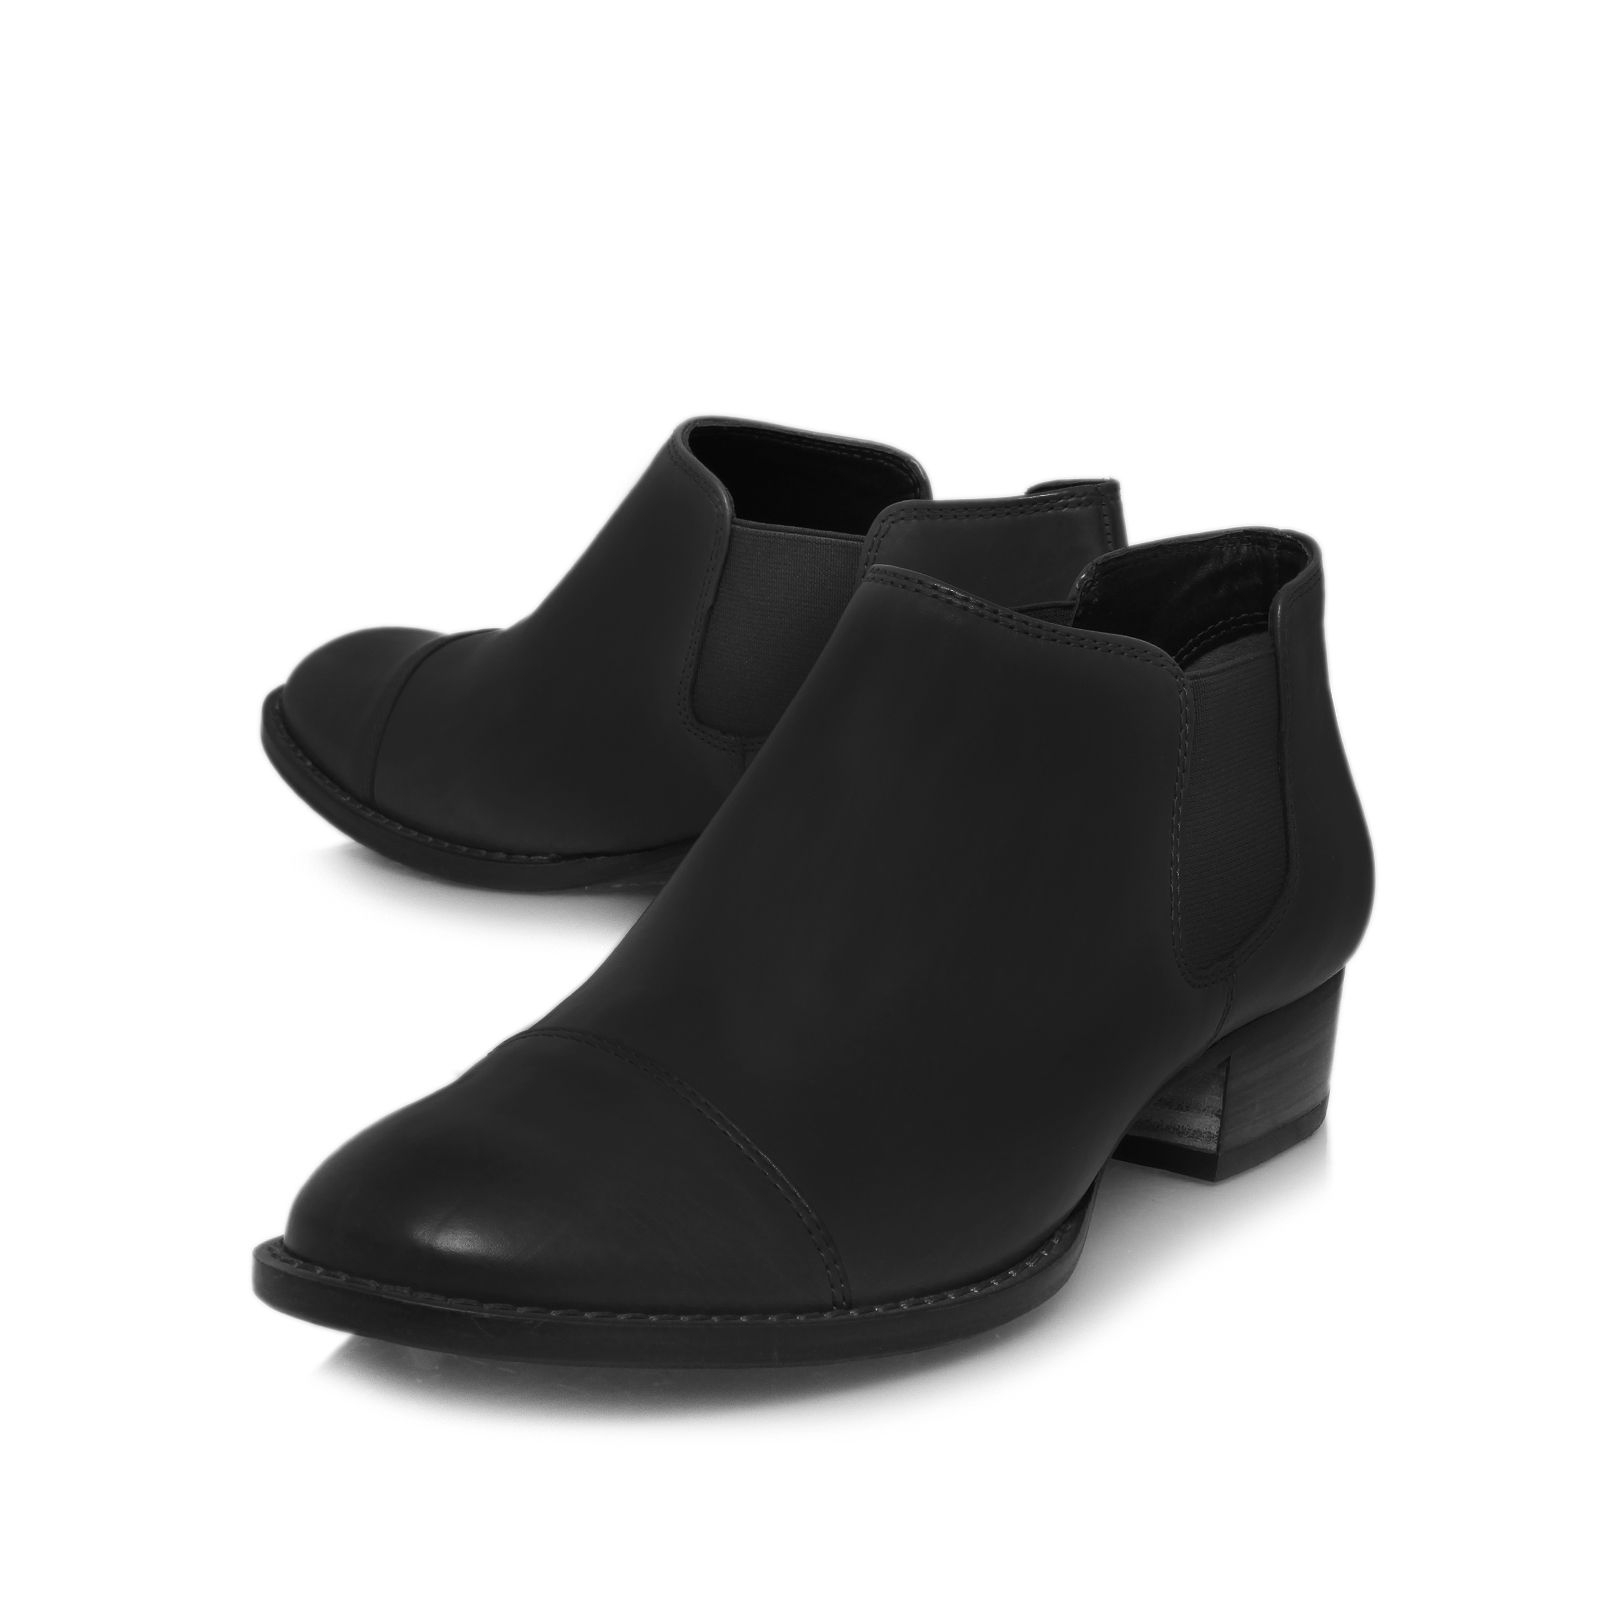 Low Heeled Black Ankle Boots | FP Boots